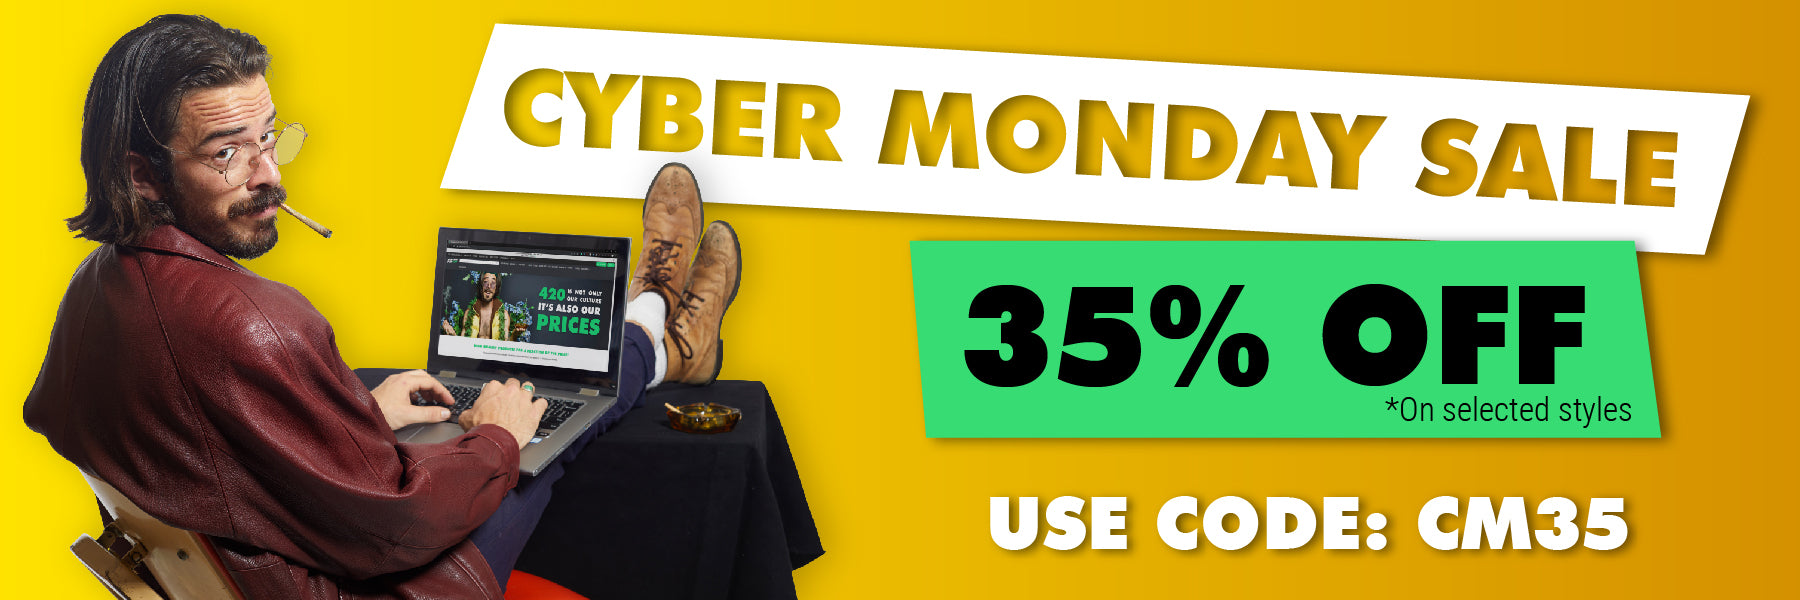 Cyber Monday Sale - 35% Off - use code: CM35